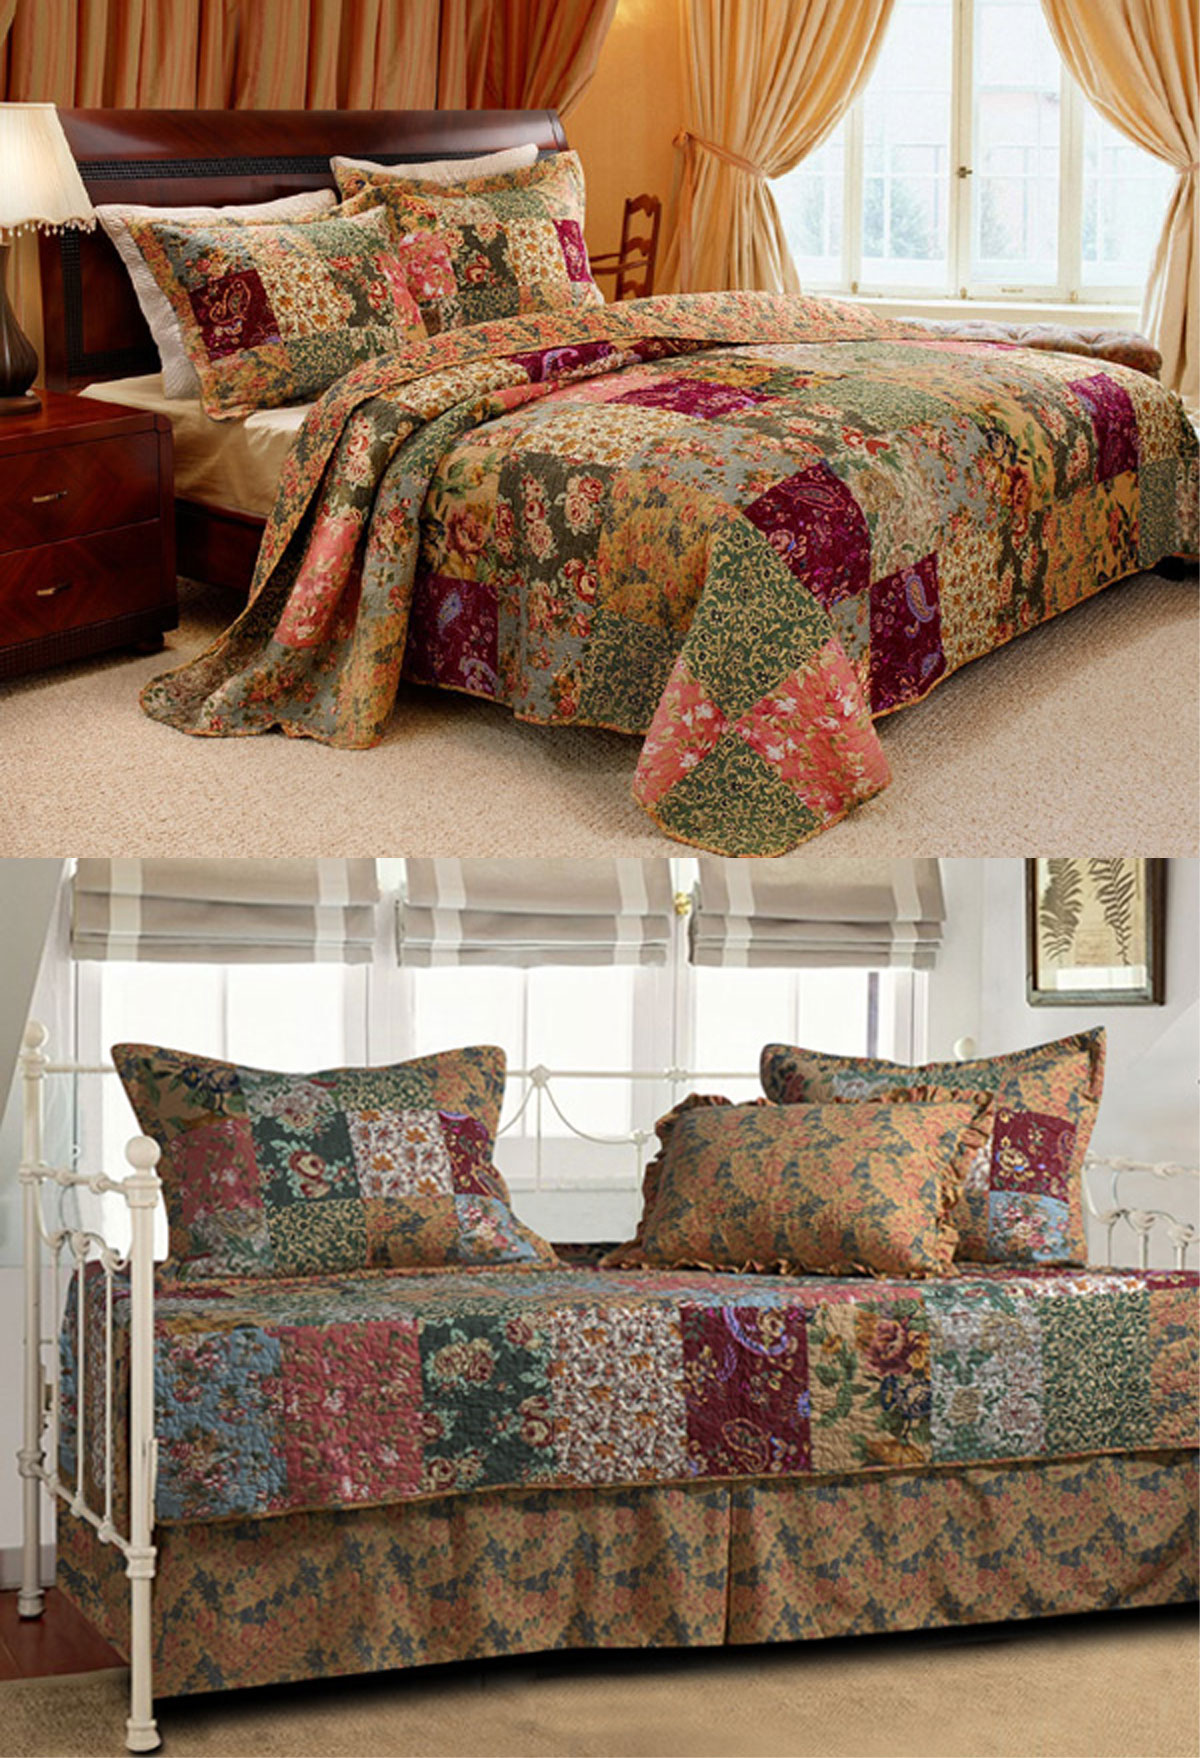 antique chic by greenland home fashions by by greenland home fashions - Greenland Home Fashions